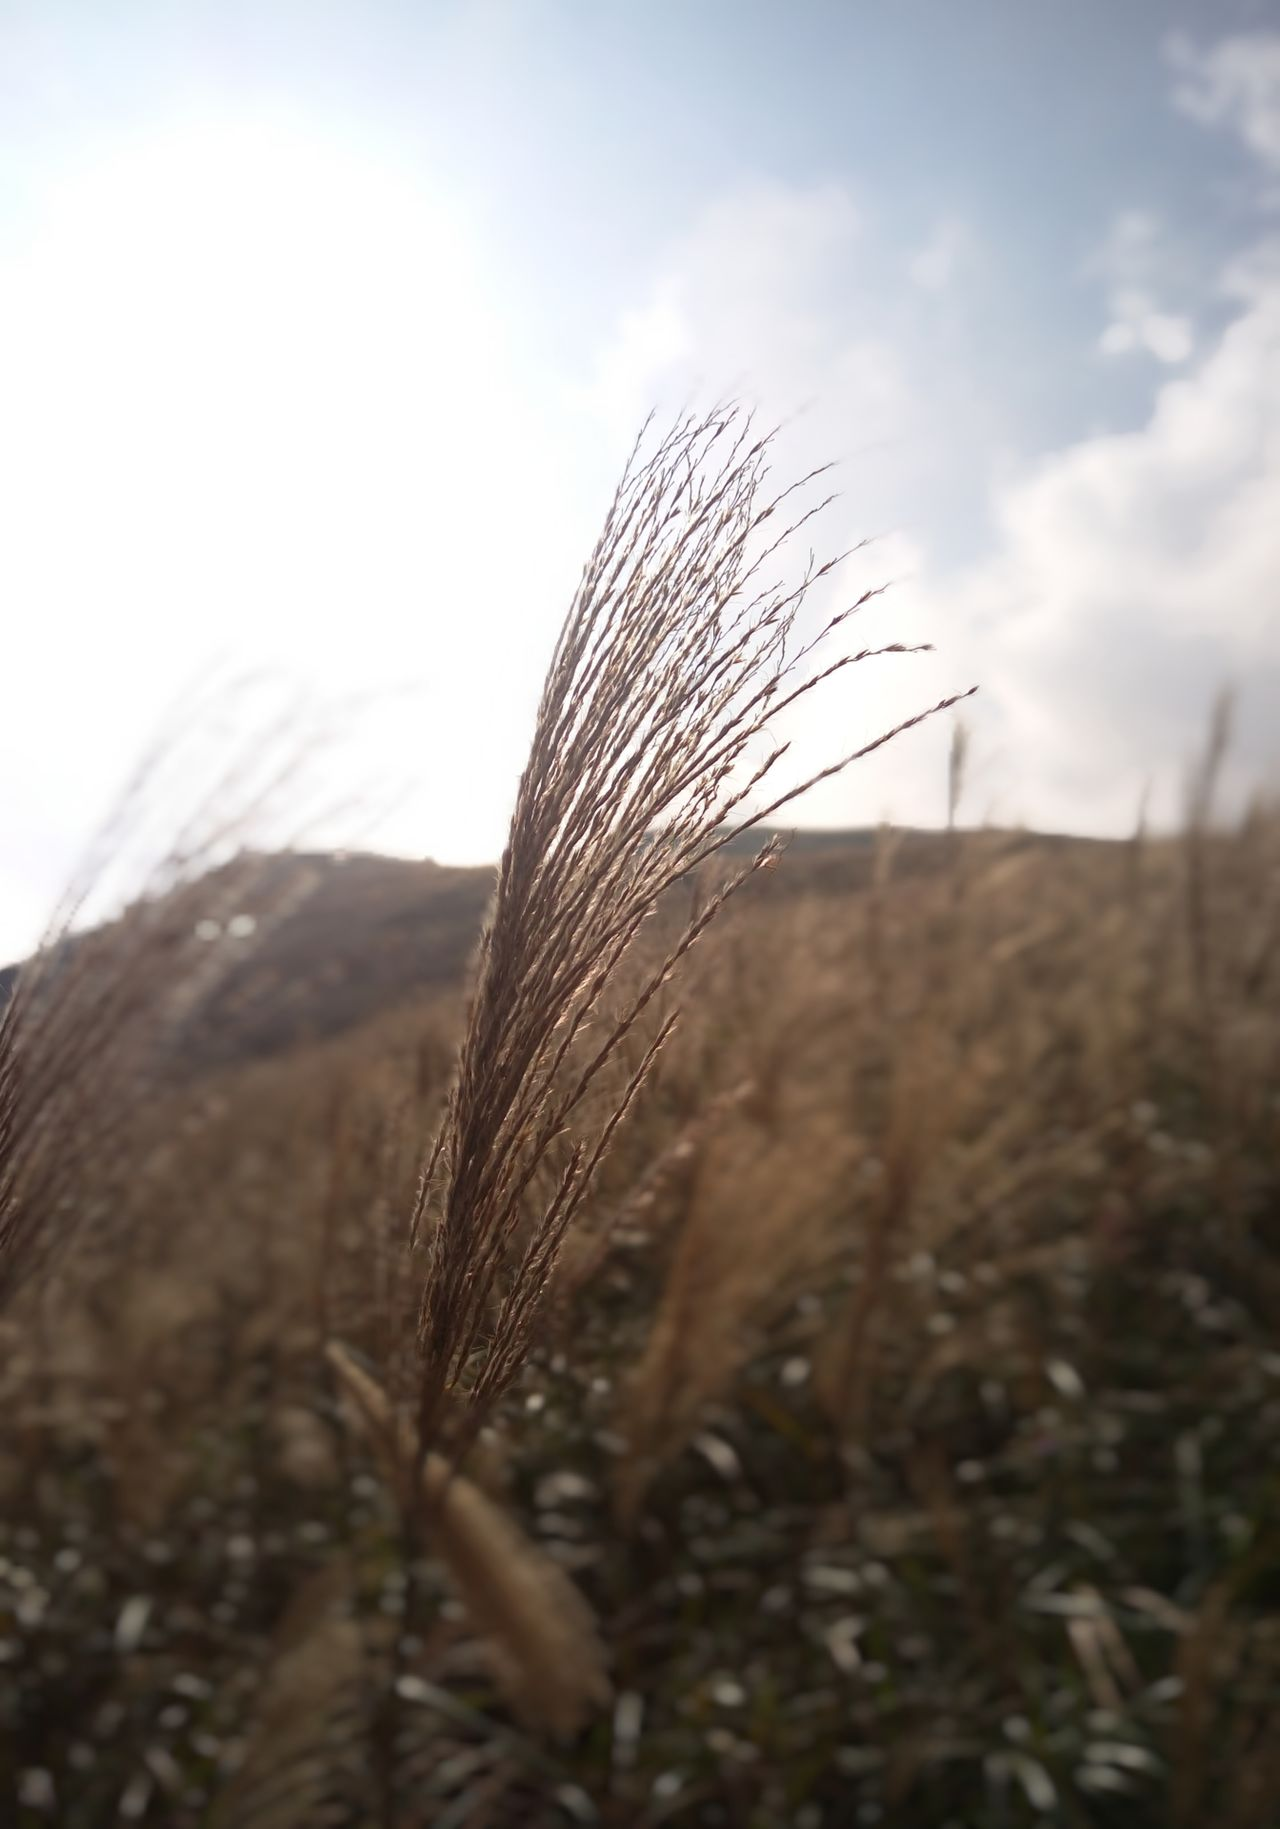 Hanging Out Hiking Adventure Sunny Sunny Day Relaxing Taking Photos Enjoying Life Nature Good View Hong Kong Silver Grass Lantau Island Silvergrass Sunset Sunlight Golden Sun No Filter No Edit Raw Photography Autumn